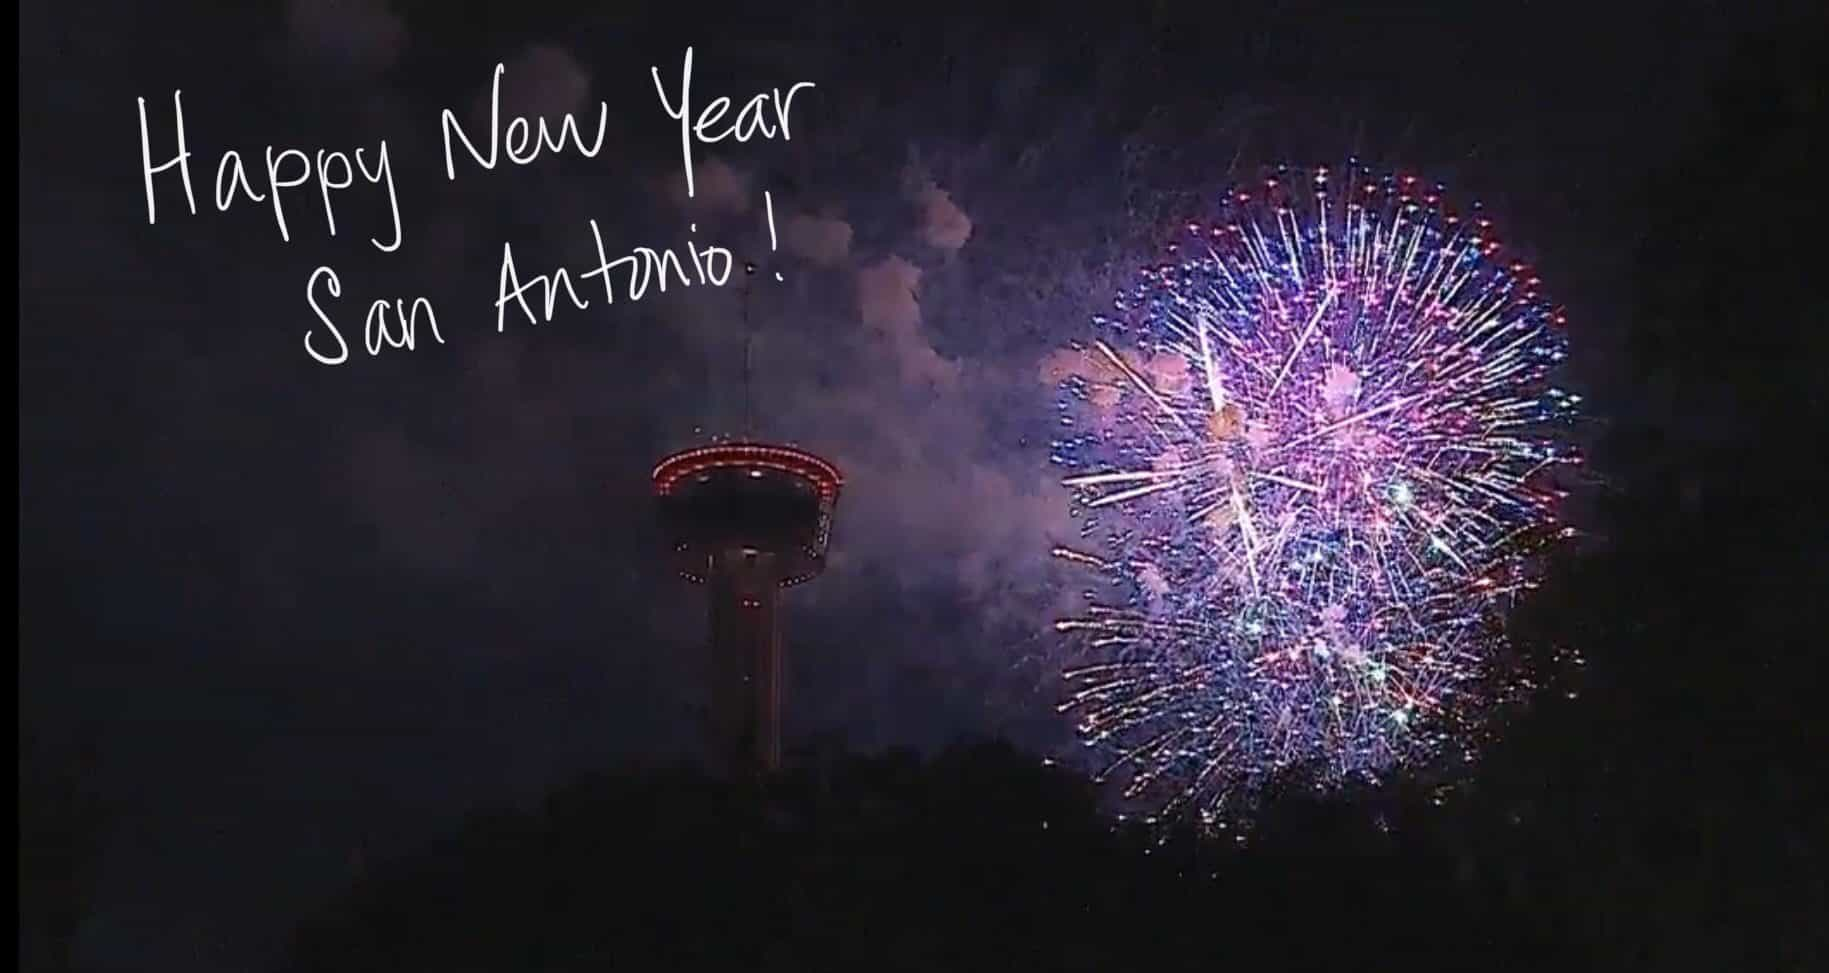 Happy New Year San Antonio 2020